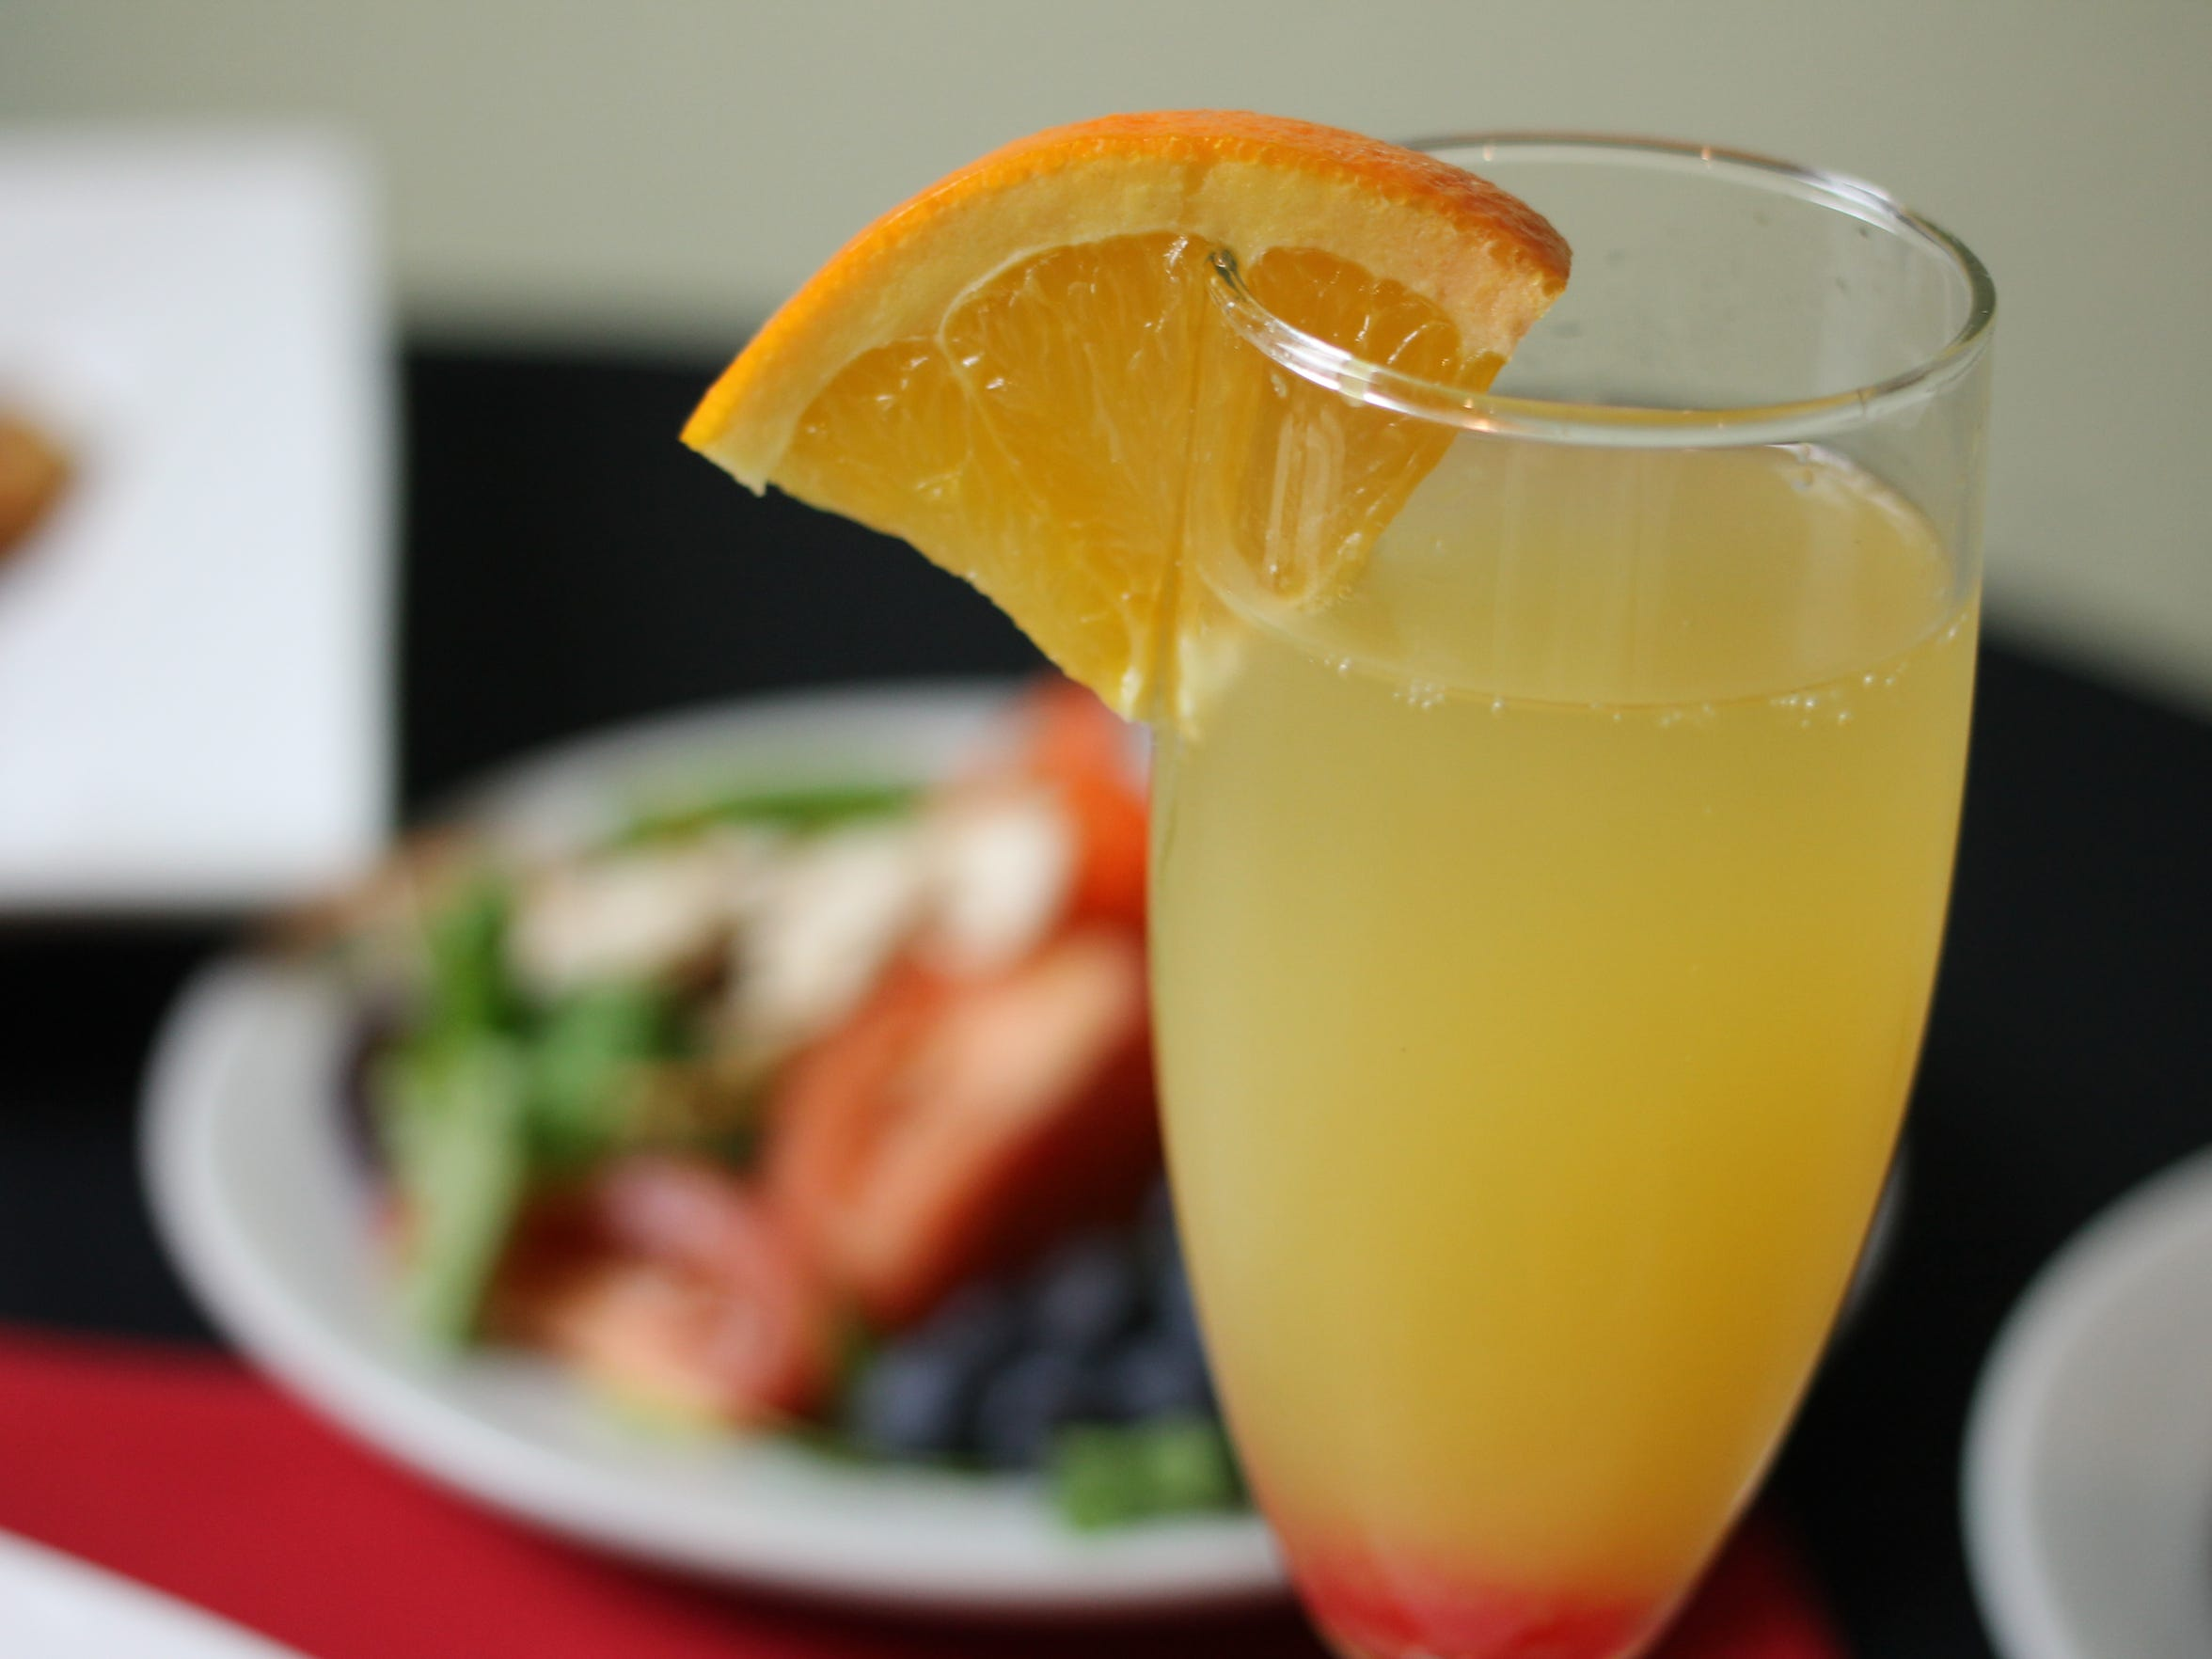 Mimosas are $1 during brunch at Ara's Restaurant, Banquet & Bar.